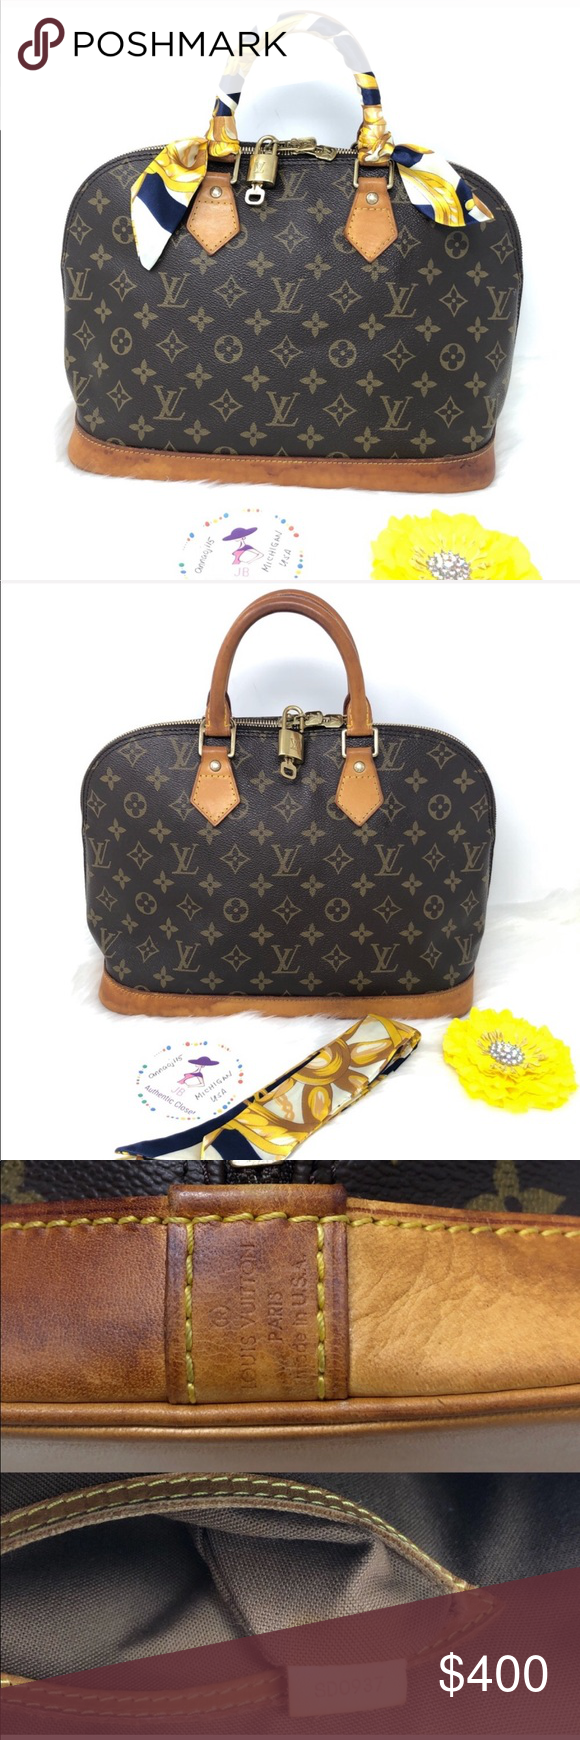 d395ebccc39 Louis Vuitton Alma PM Bag 💥Price is Firm💥 100% Authentic Preowned Used